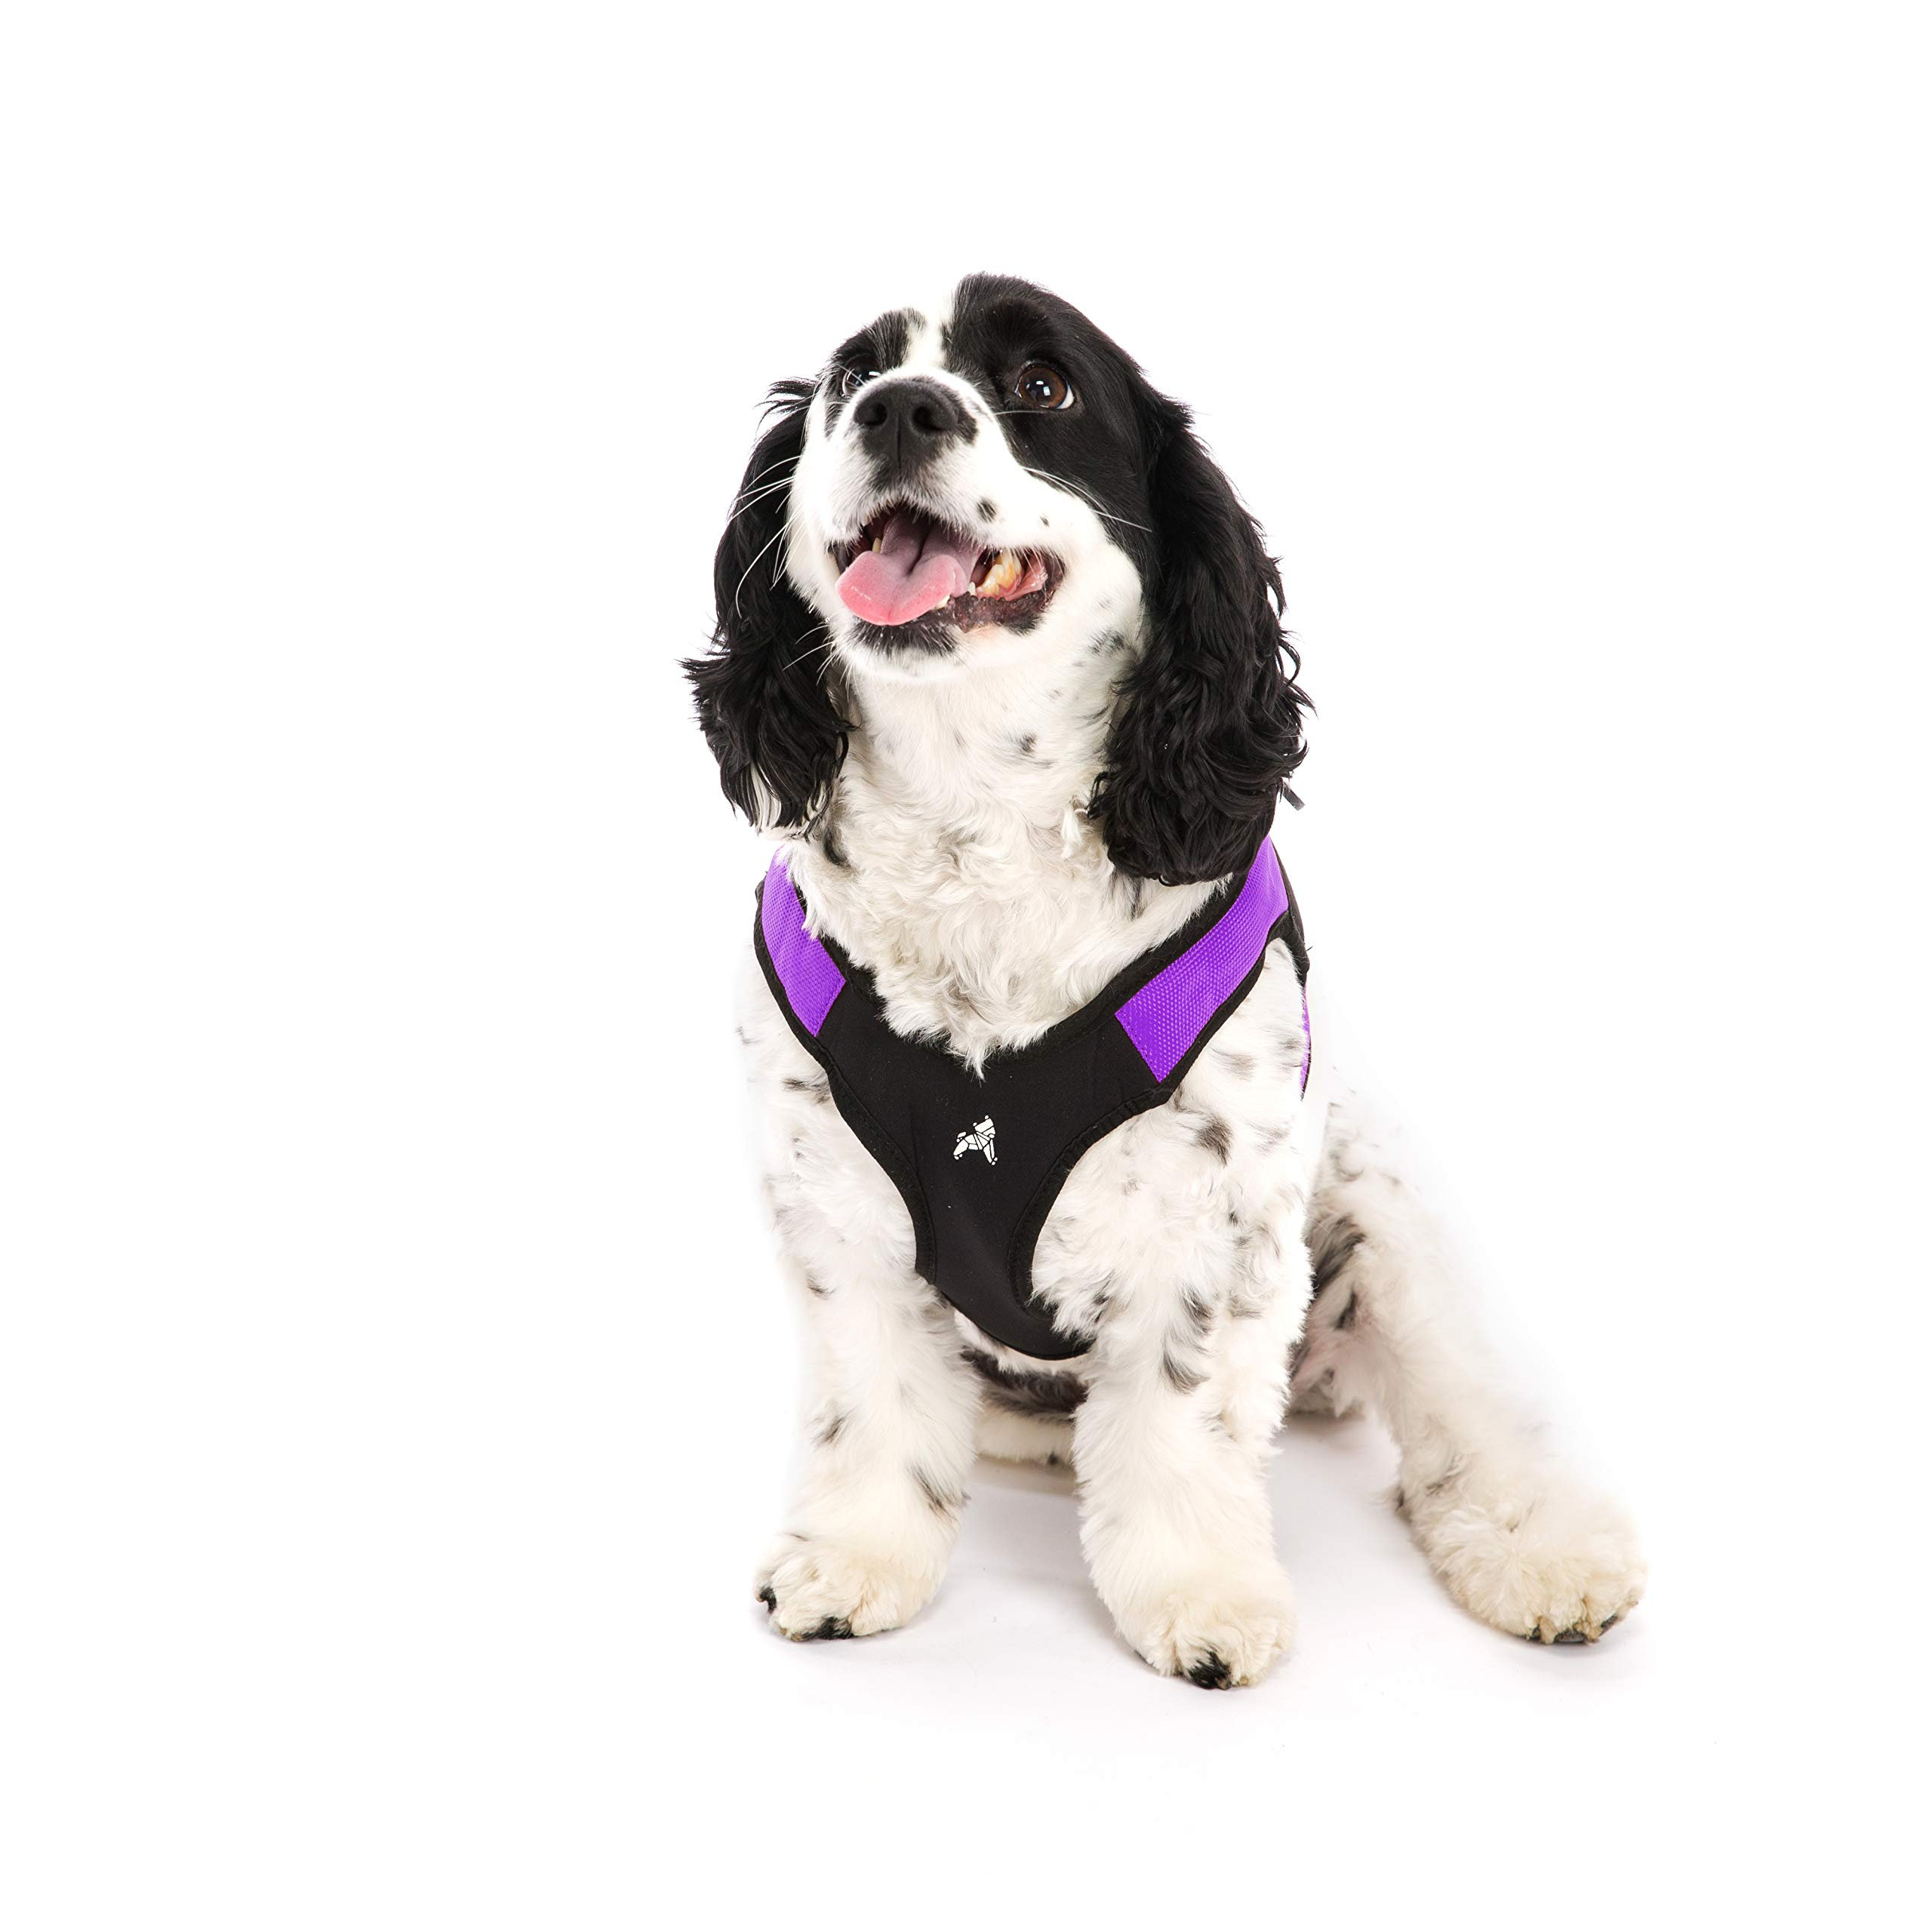 Gooby - Escape Free Easy Fit Harness, Small Dog Step-in Harness for Dogs That Like to Escape Their Harness, Purple, Large by Gooby